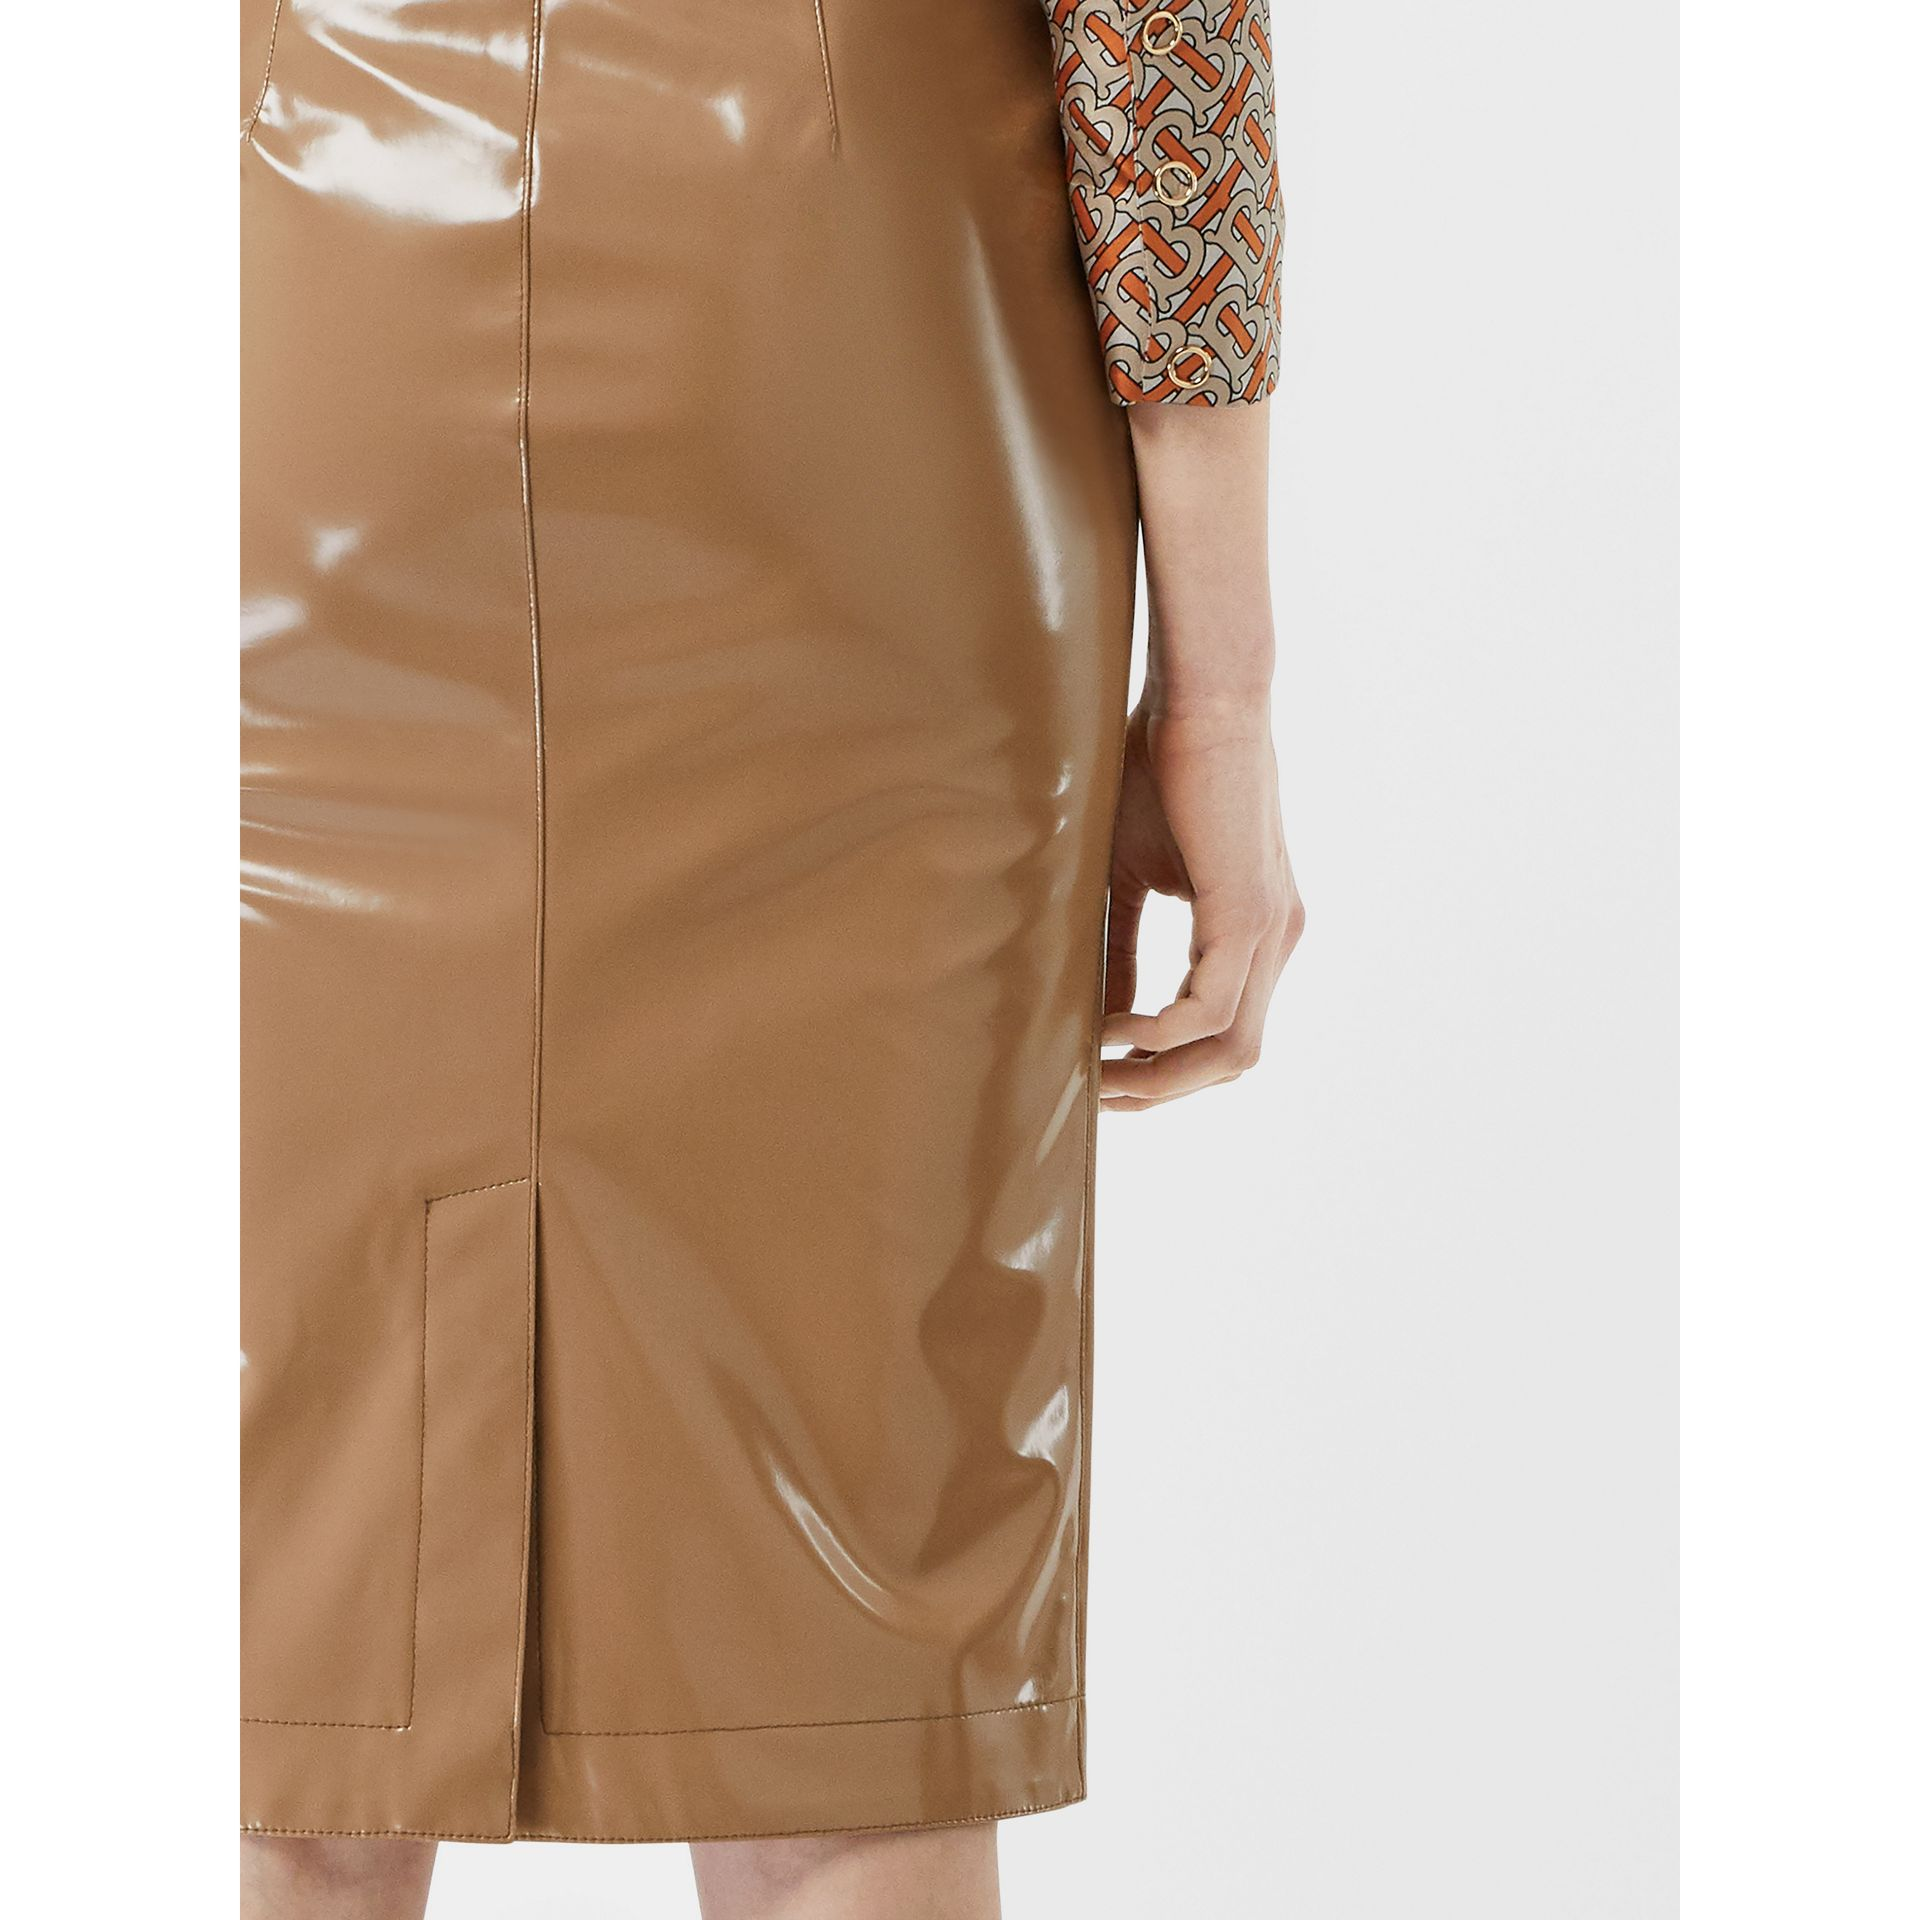 Vinyl Pencil Skirt in Utility Beige - Women | Burberry - gallery image 4